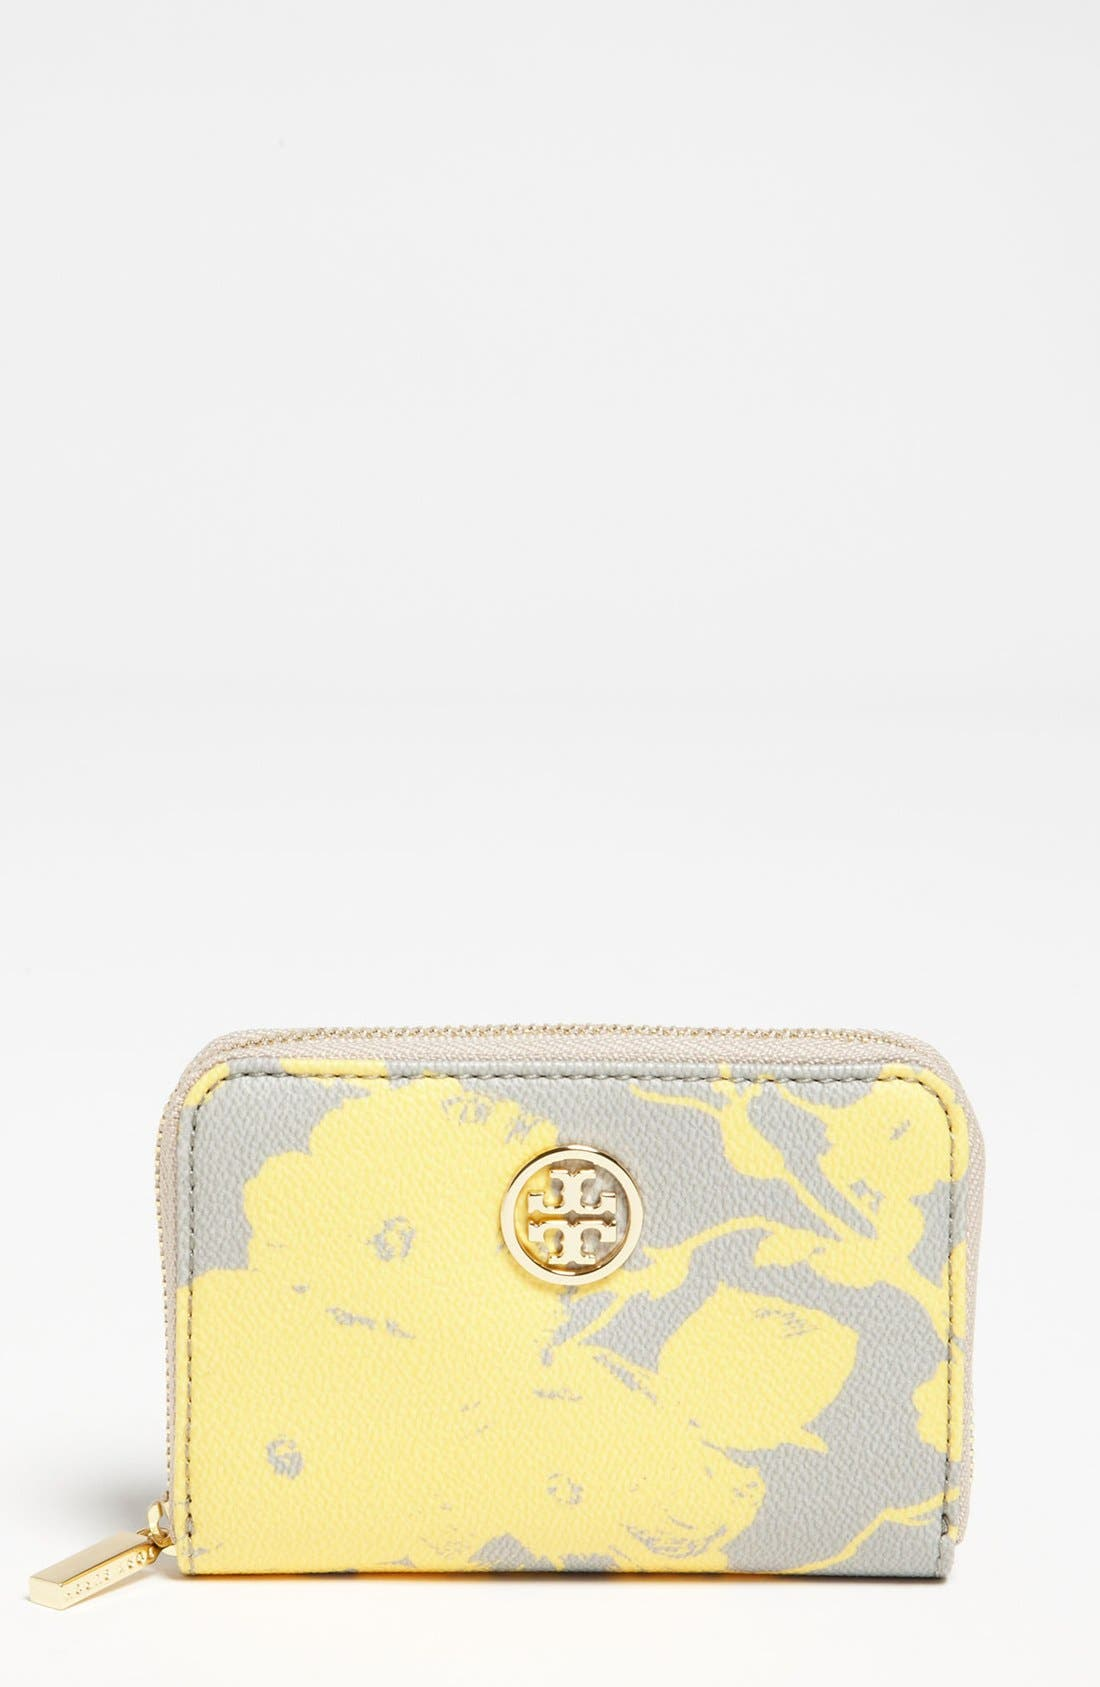 Main Image - Tory Burch 'Robinson' Coin Wallet